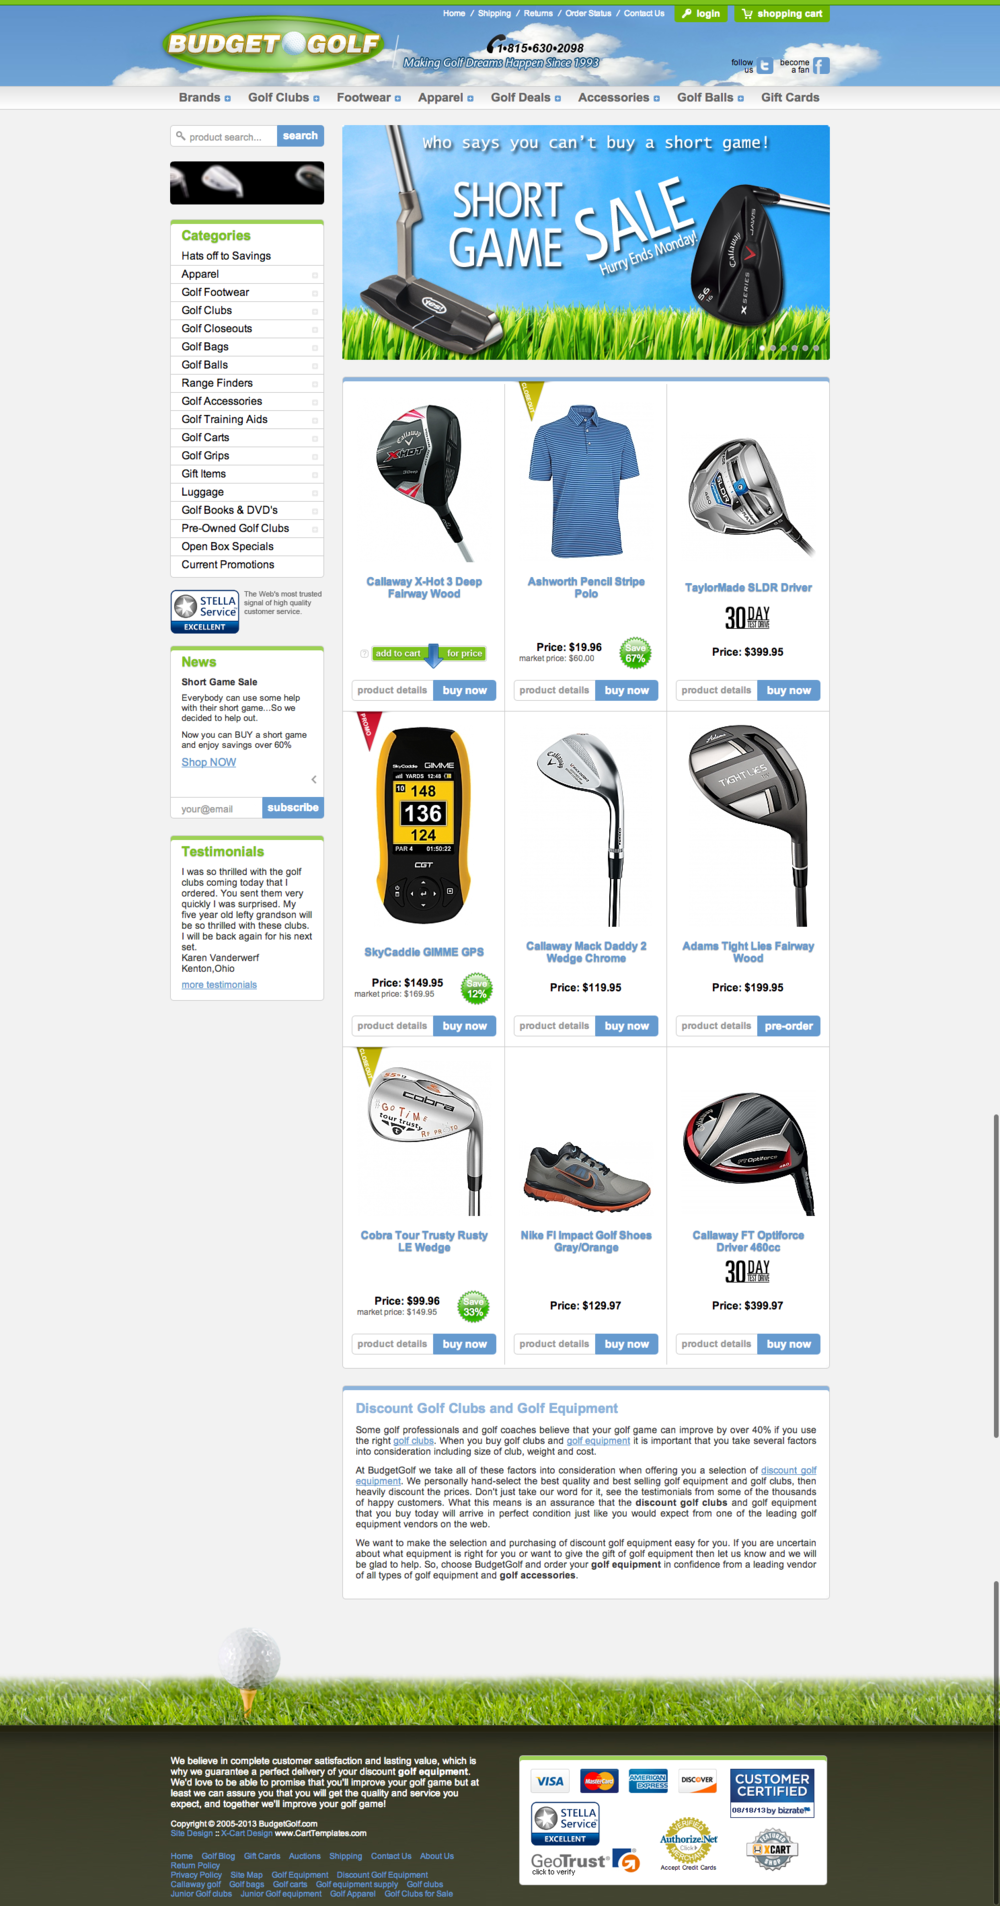 Kids Golf Clubs  Discount Golf Clubs  Discount Golf.png